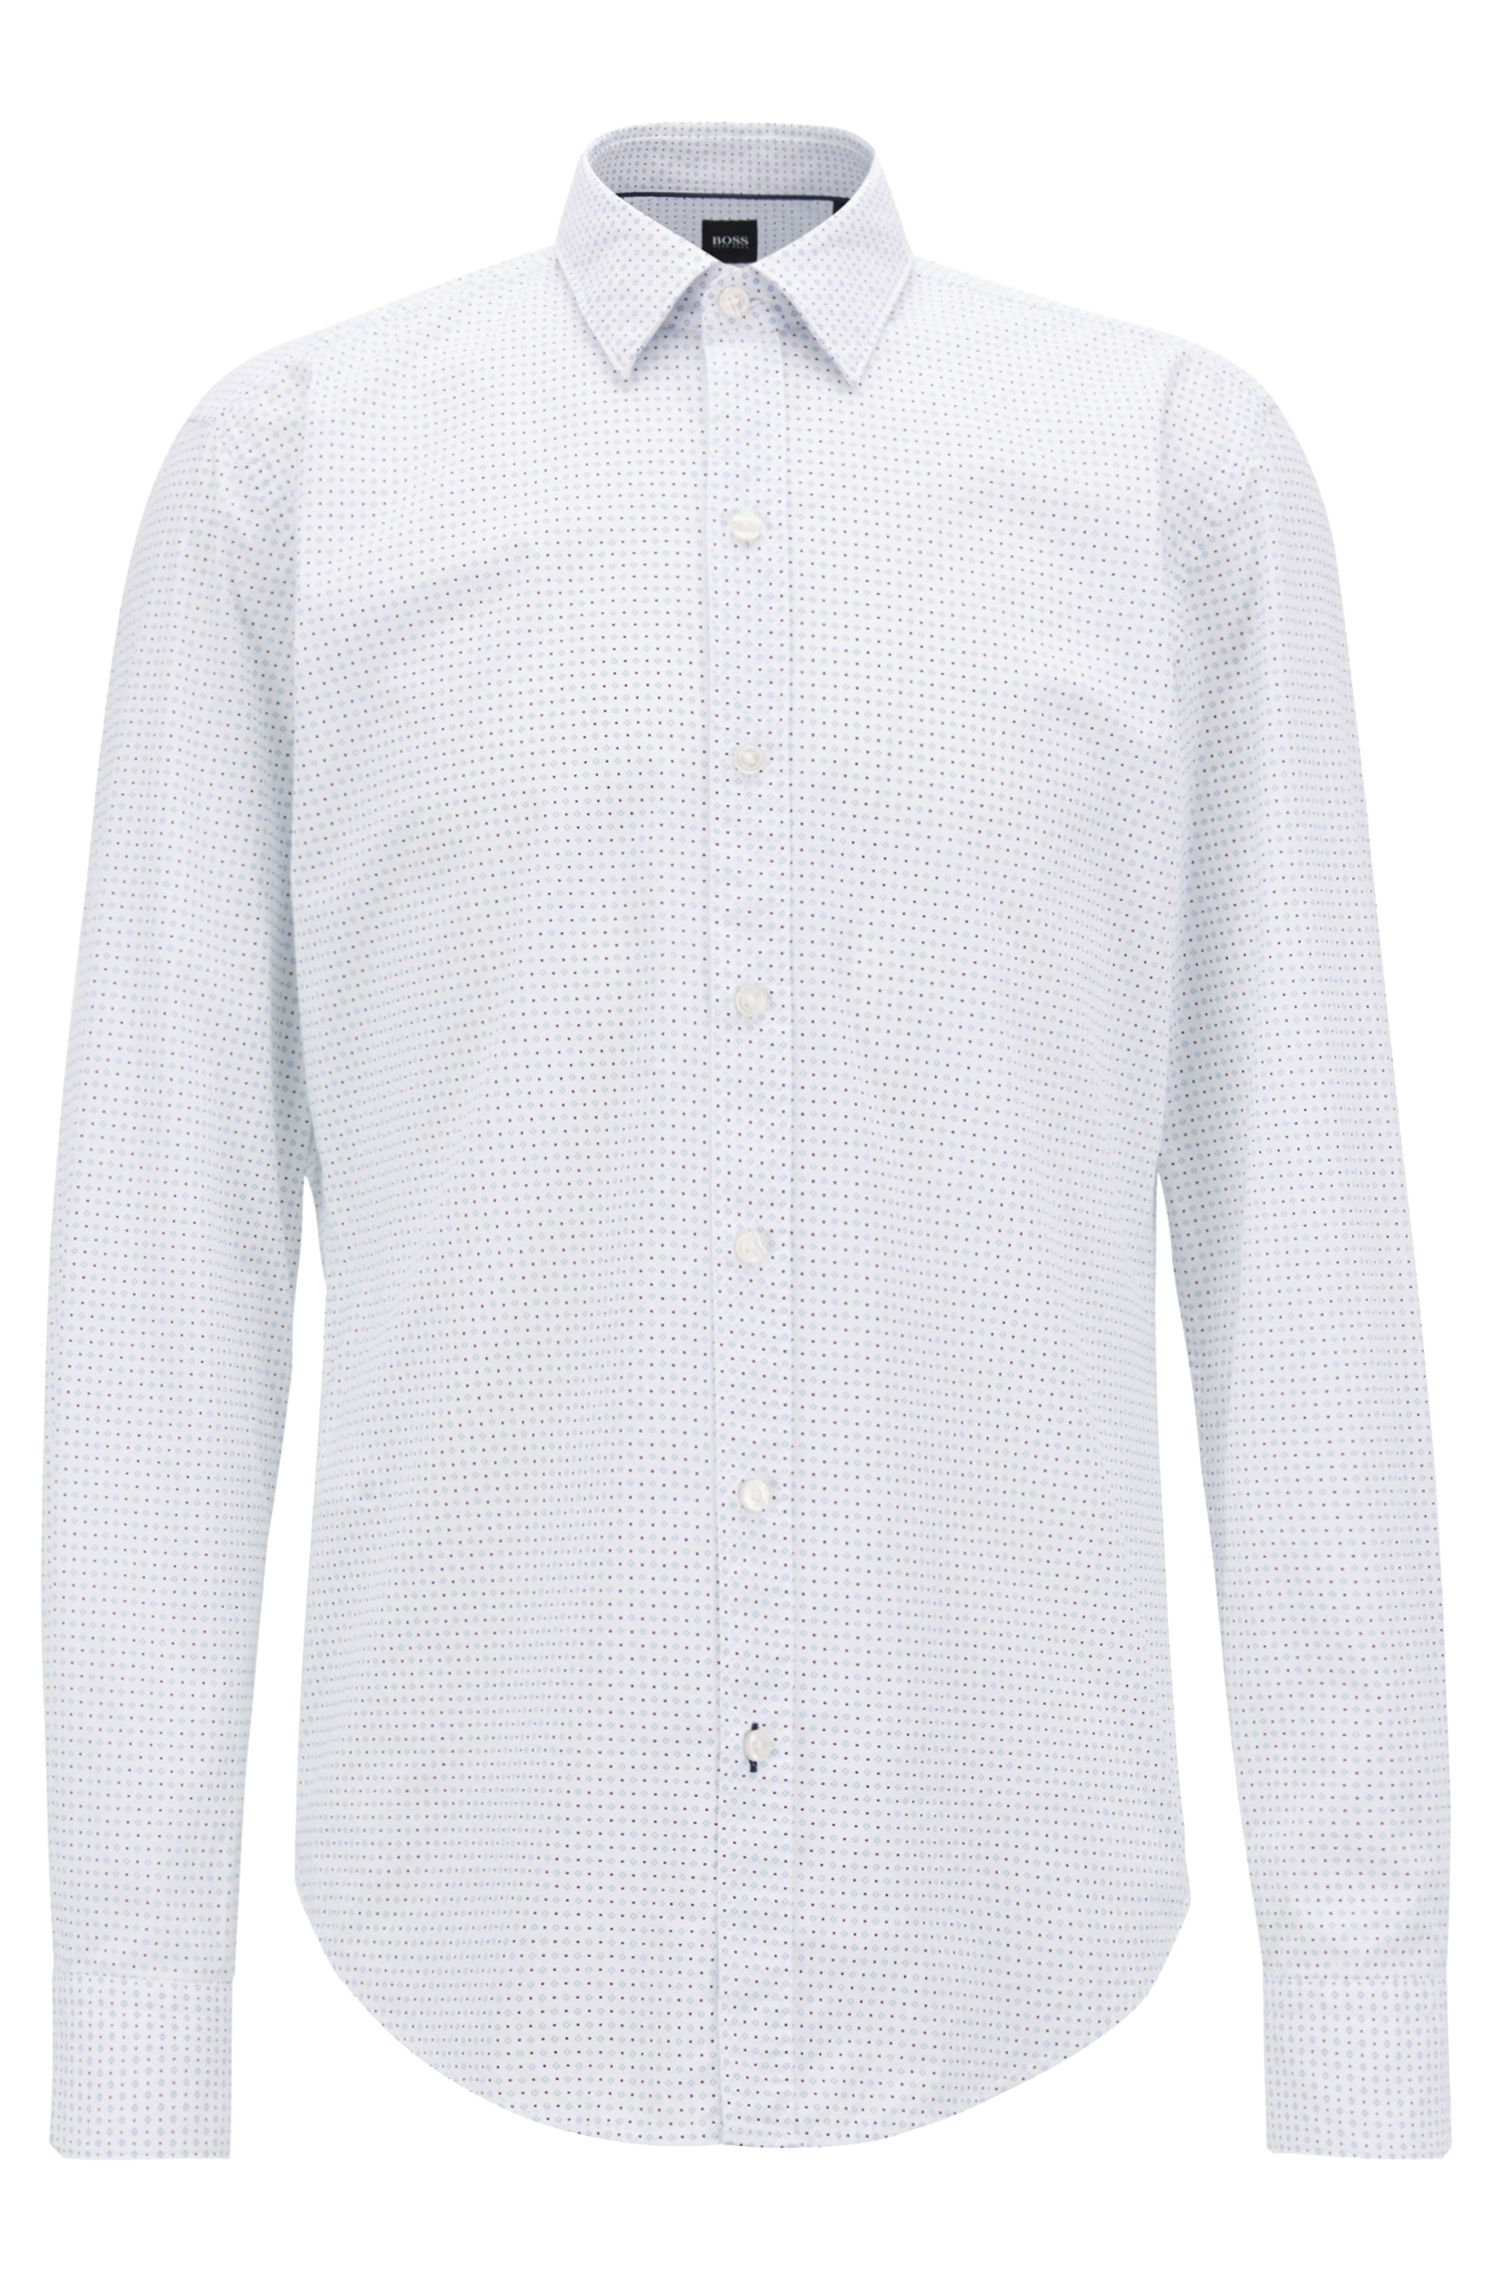 Soft Cotton Shirt, Slim Fit | Robbie